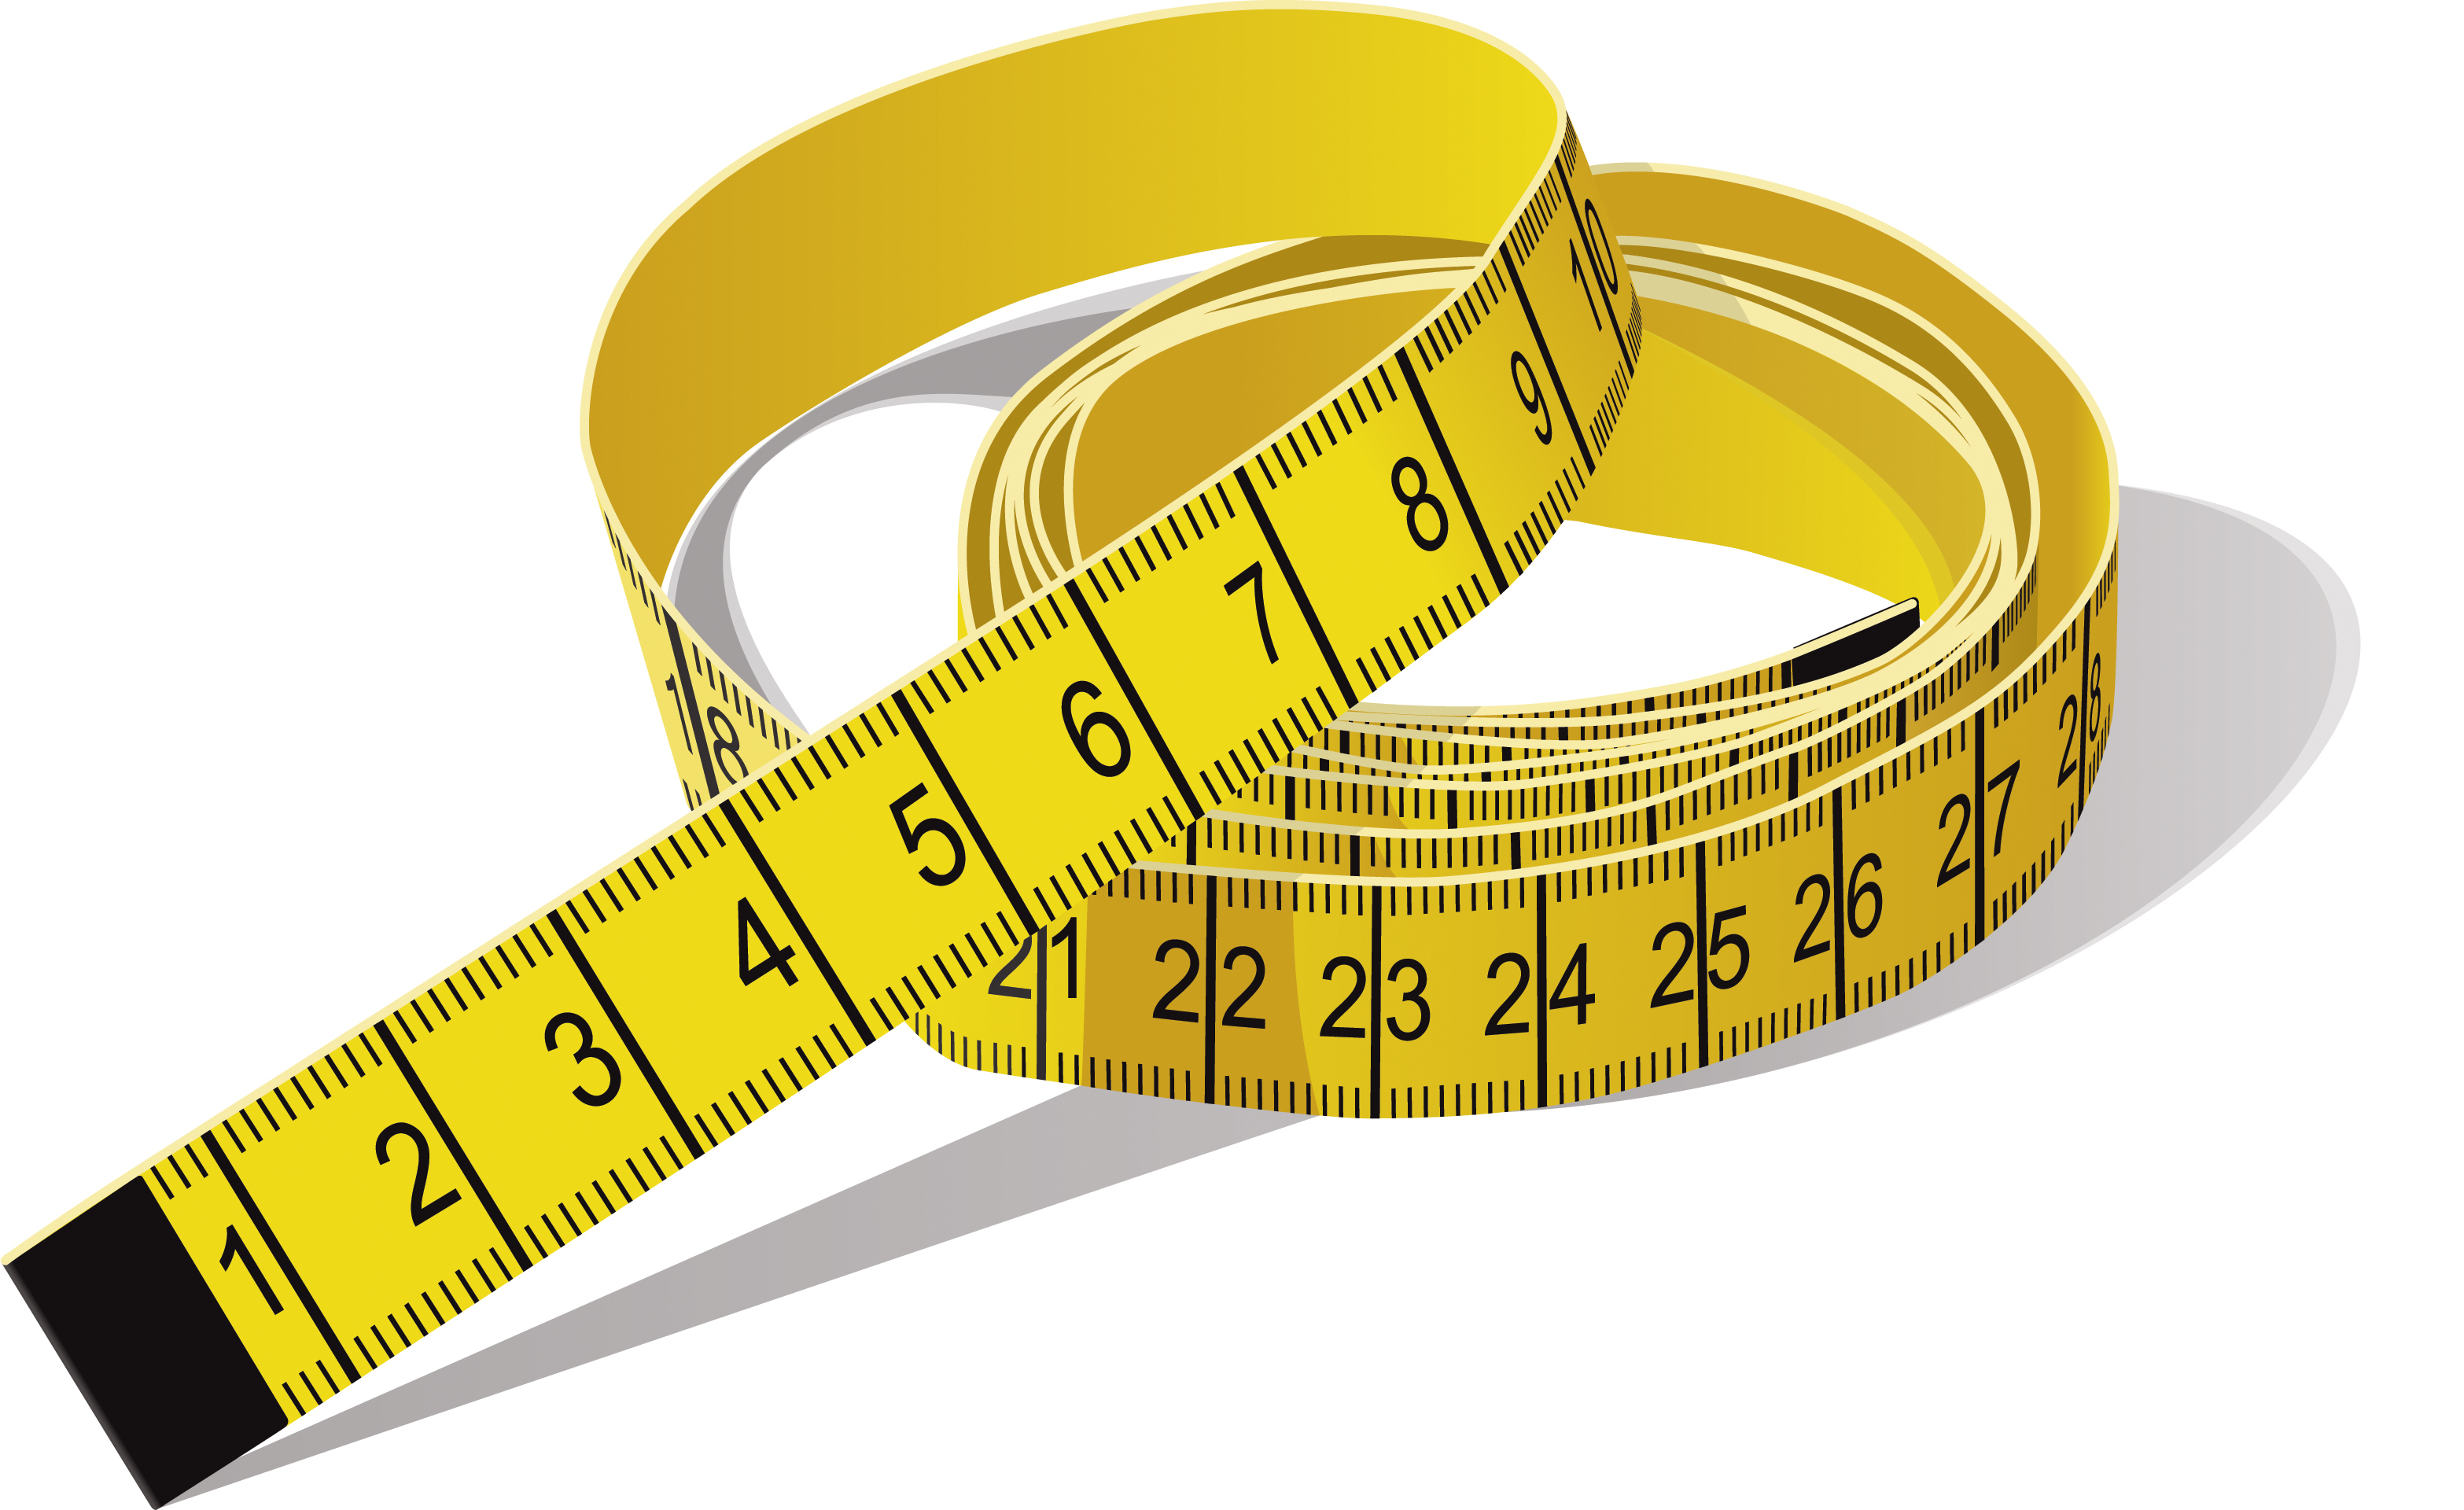 Body Tape Measure PNG - 162135